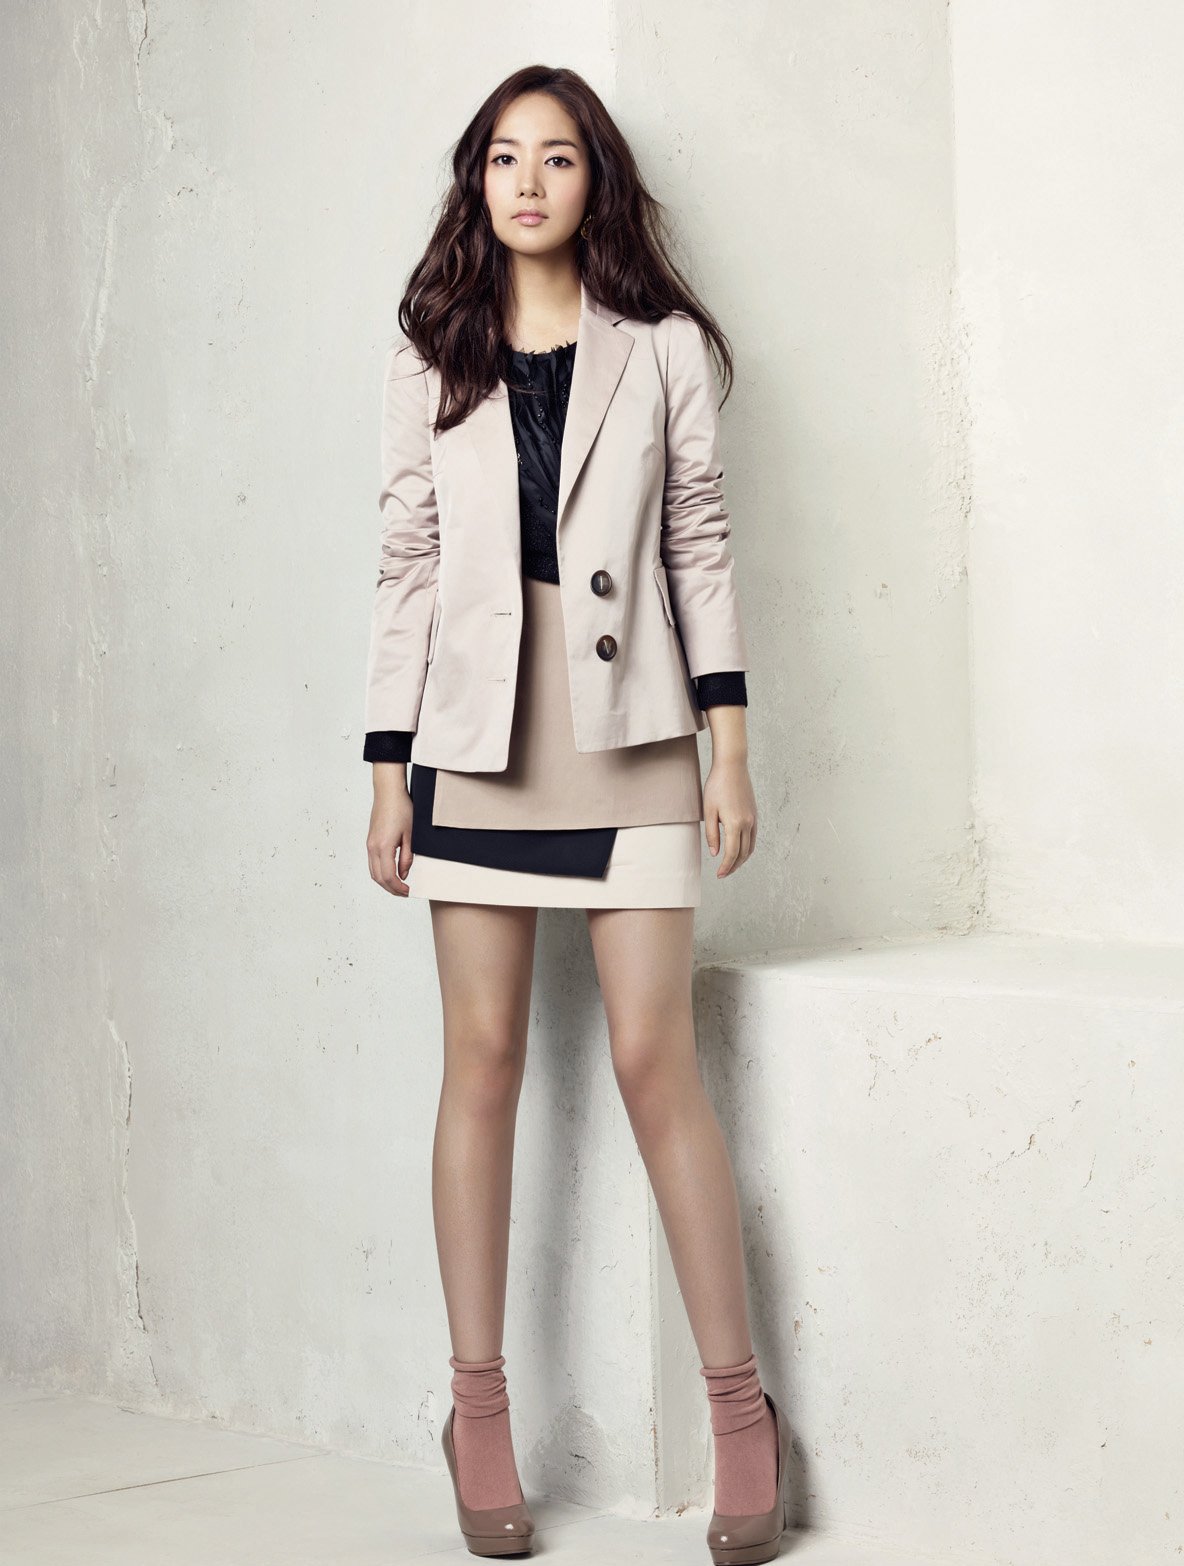 Life Is Choice Park Min Young Photoshoot Campagna Spring Catalogue 2011